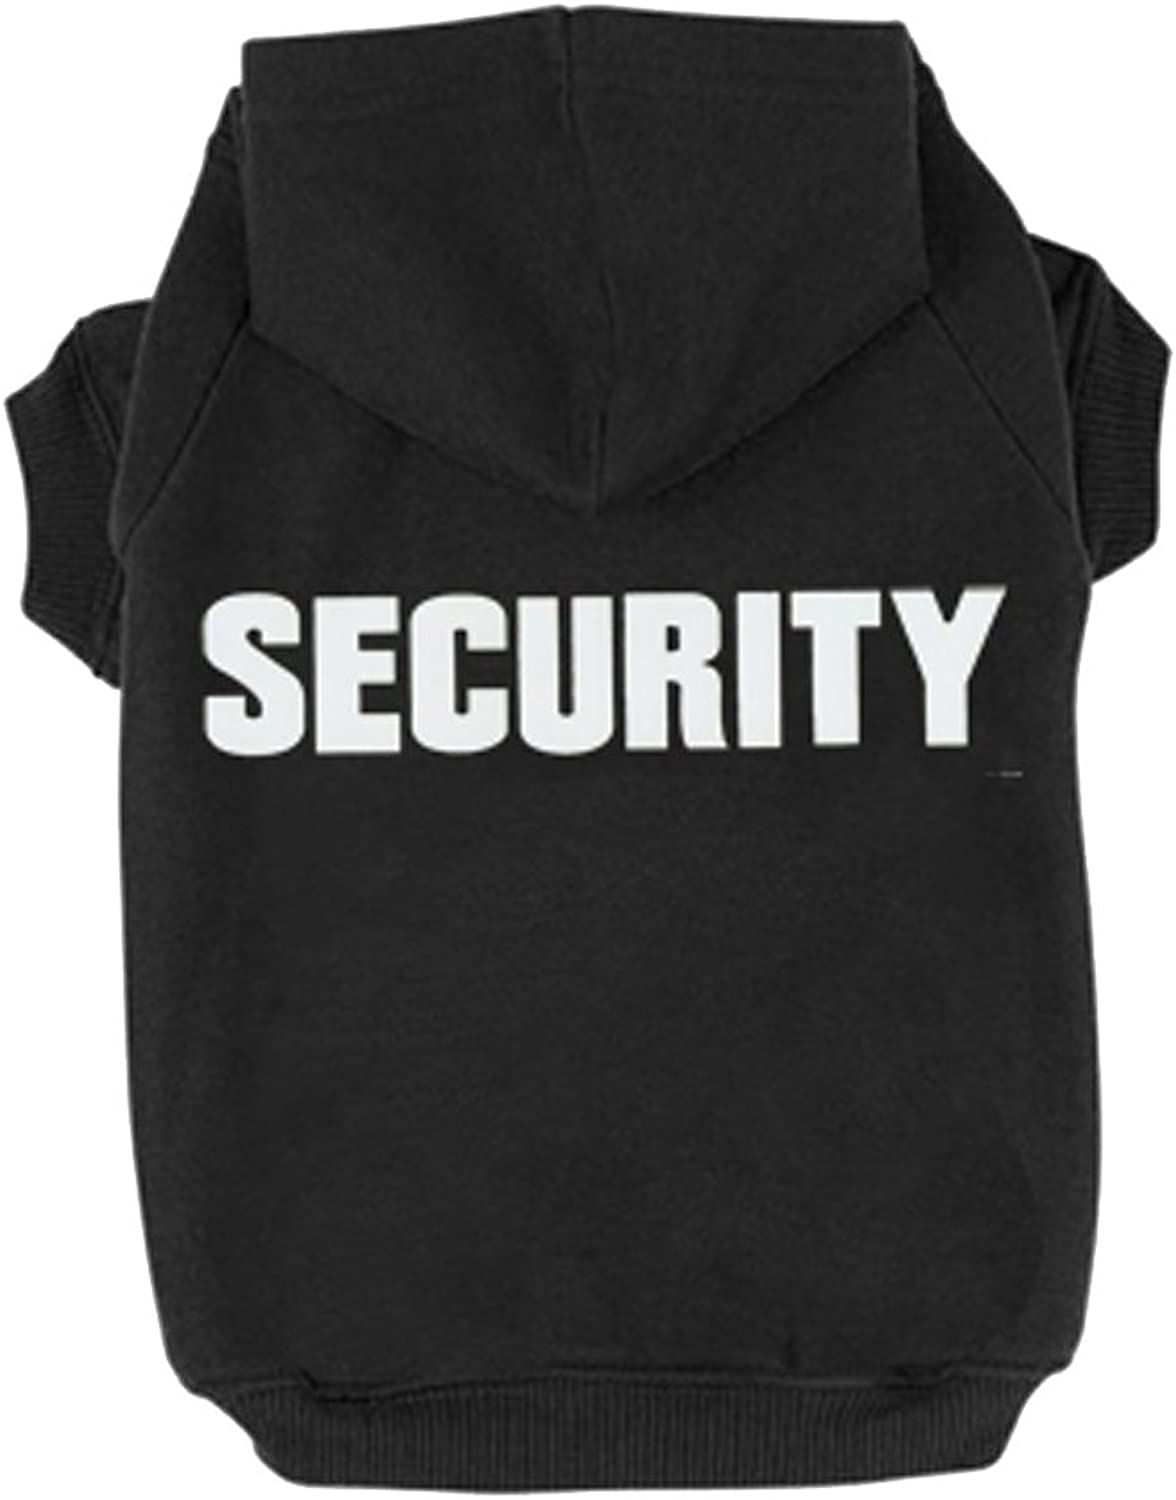 BINGPET BA10021 Security Patterns Printed Puppy Pet Hoodie Dog Clothes XL